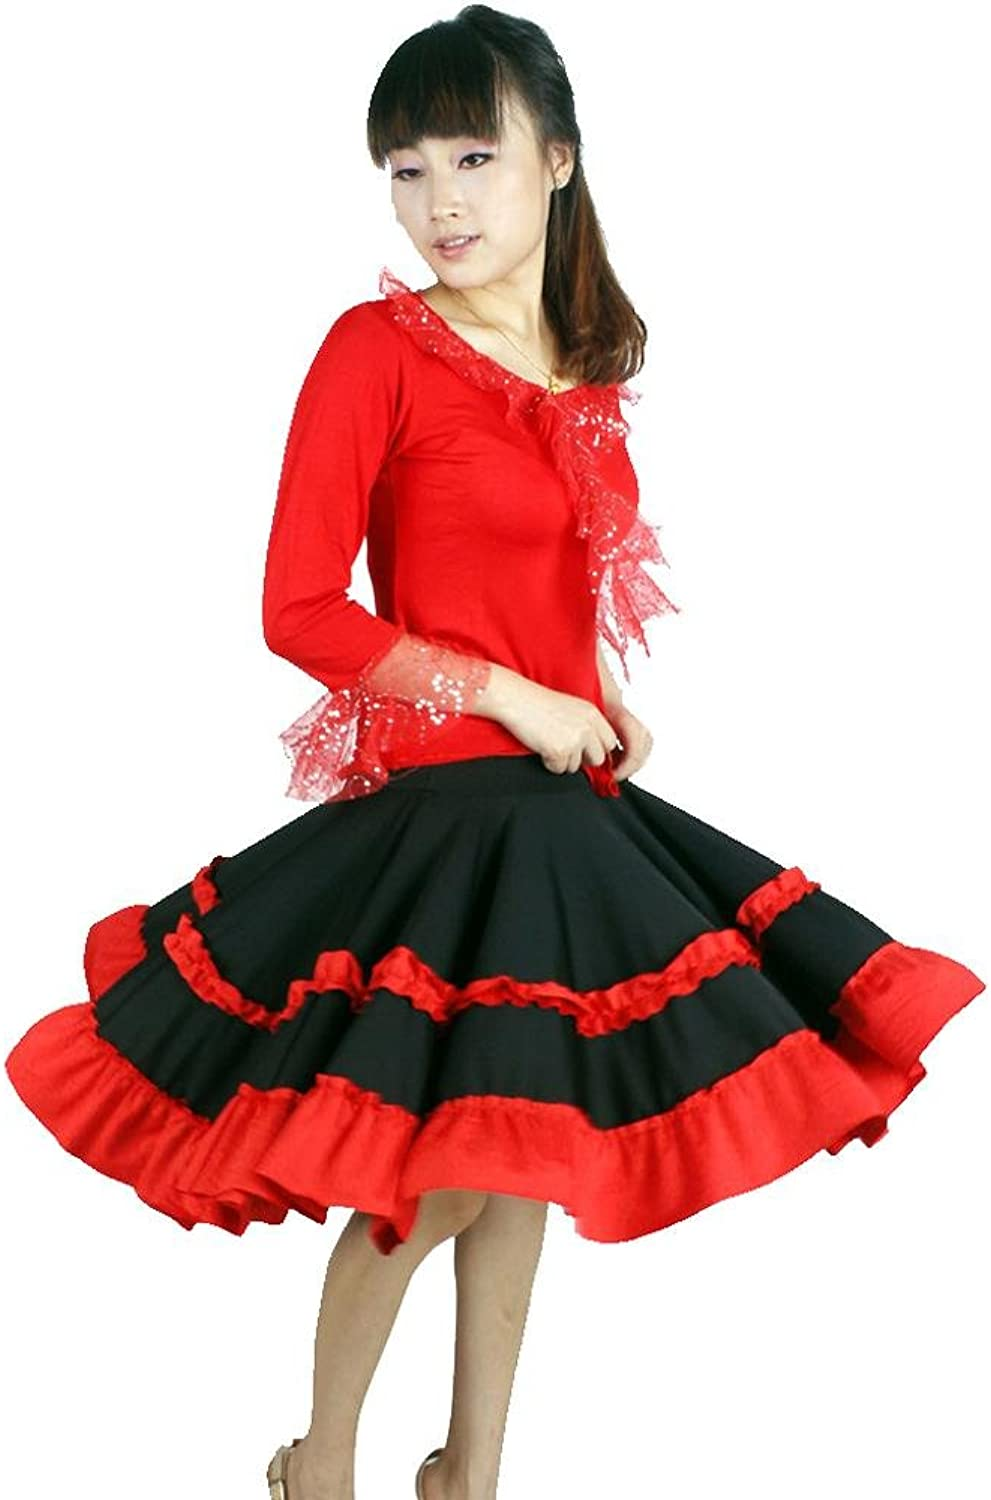 Byjia Latin Square Dance Dress Yoga Pompry Ballroom Costume Big Pendulum Skirt Practice Match Uniforms Professional Performance Women Sets